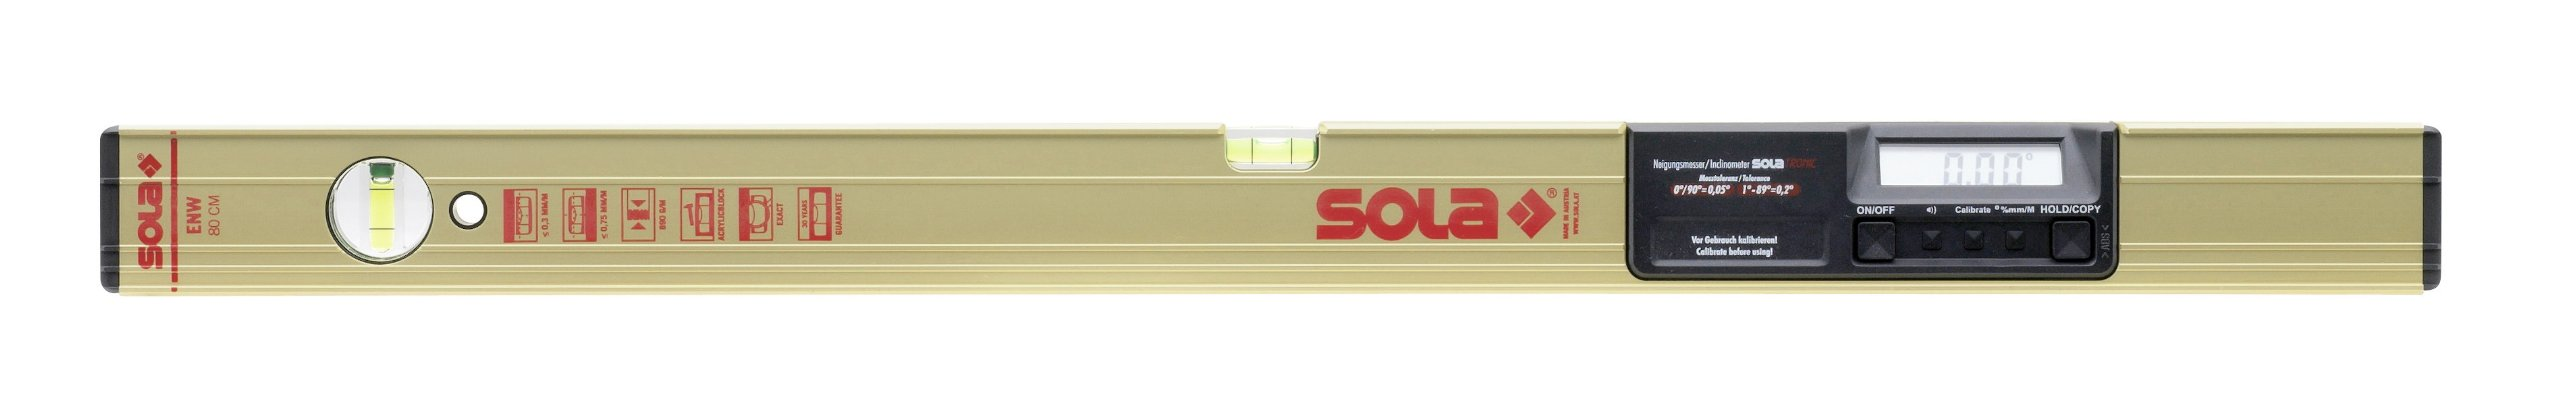 Sola Aluminum Box Level with Digital Electronic Inclinometer w/Carry Bag - ENW 60 T